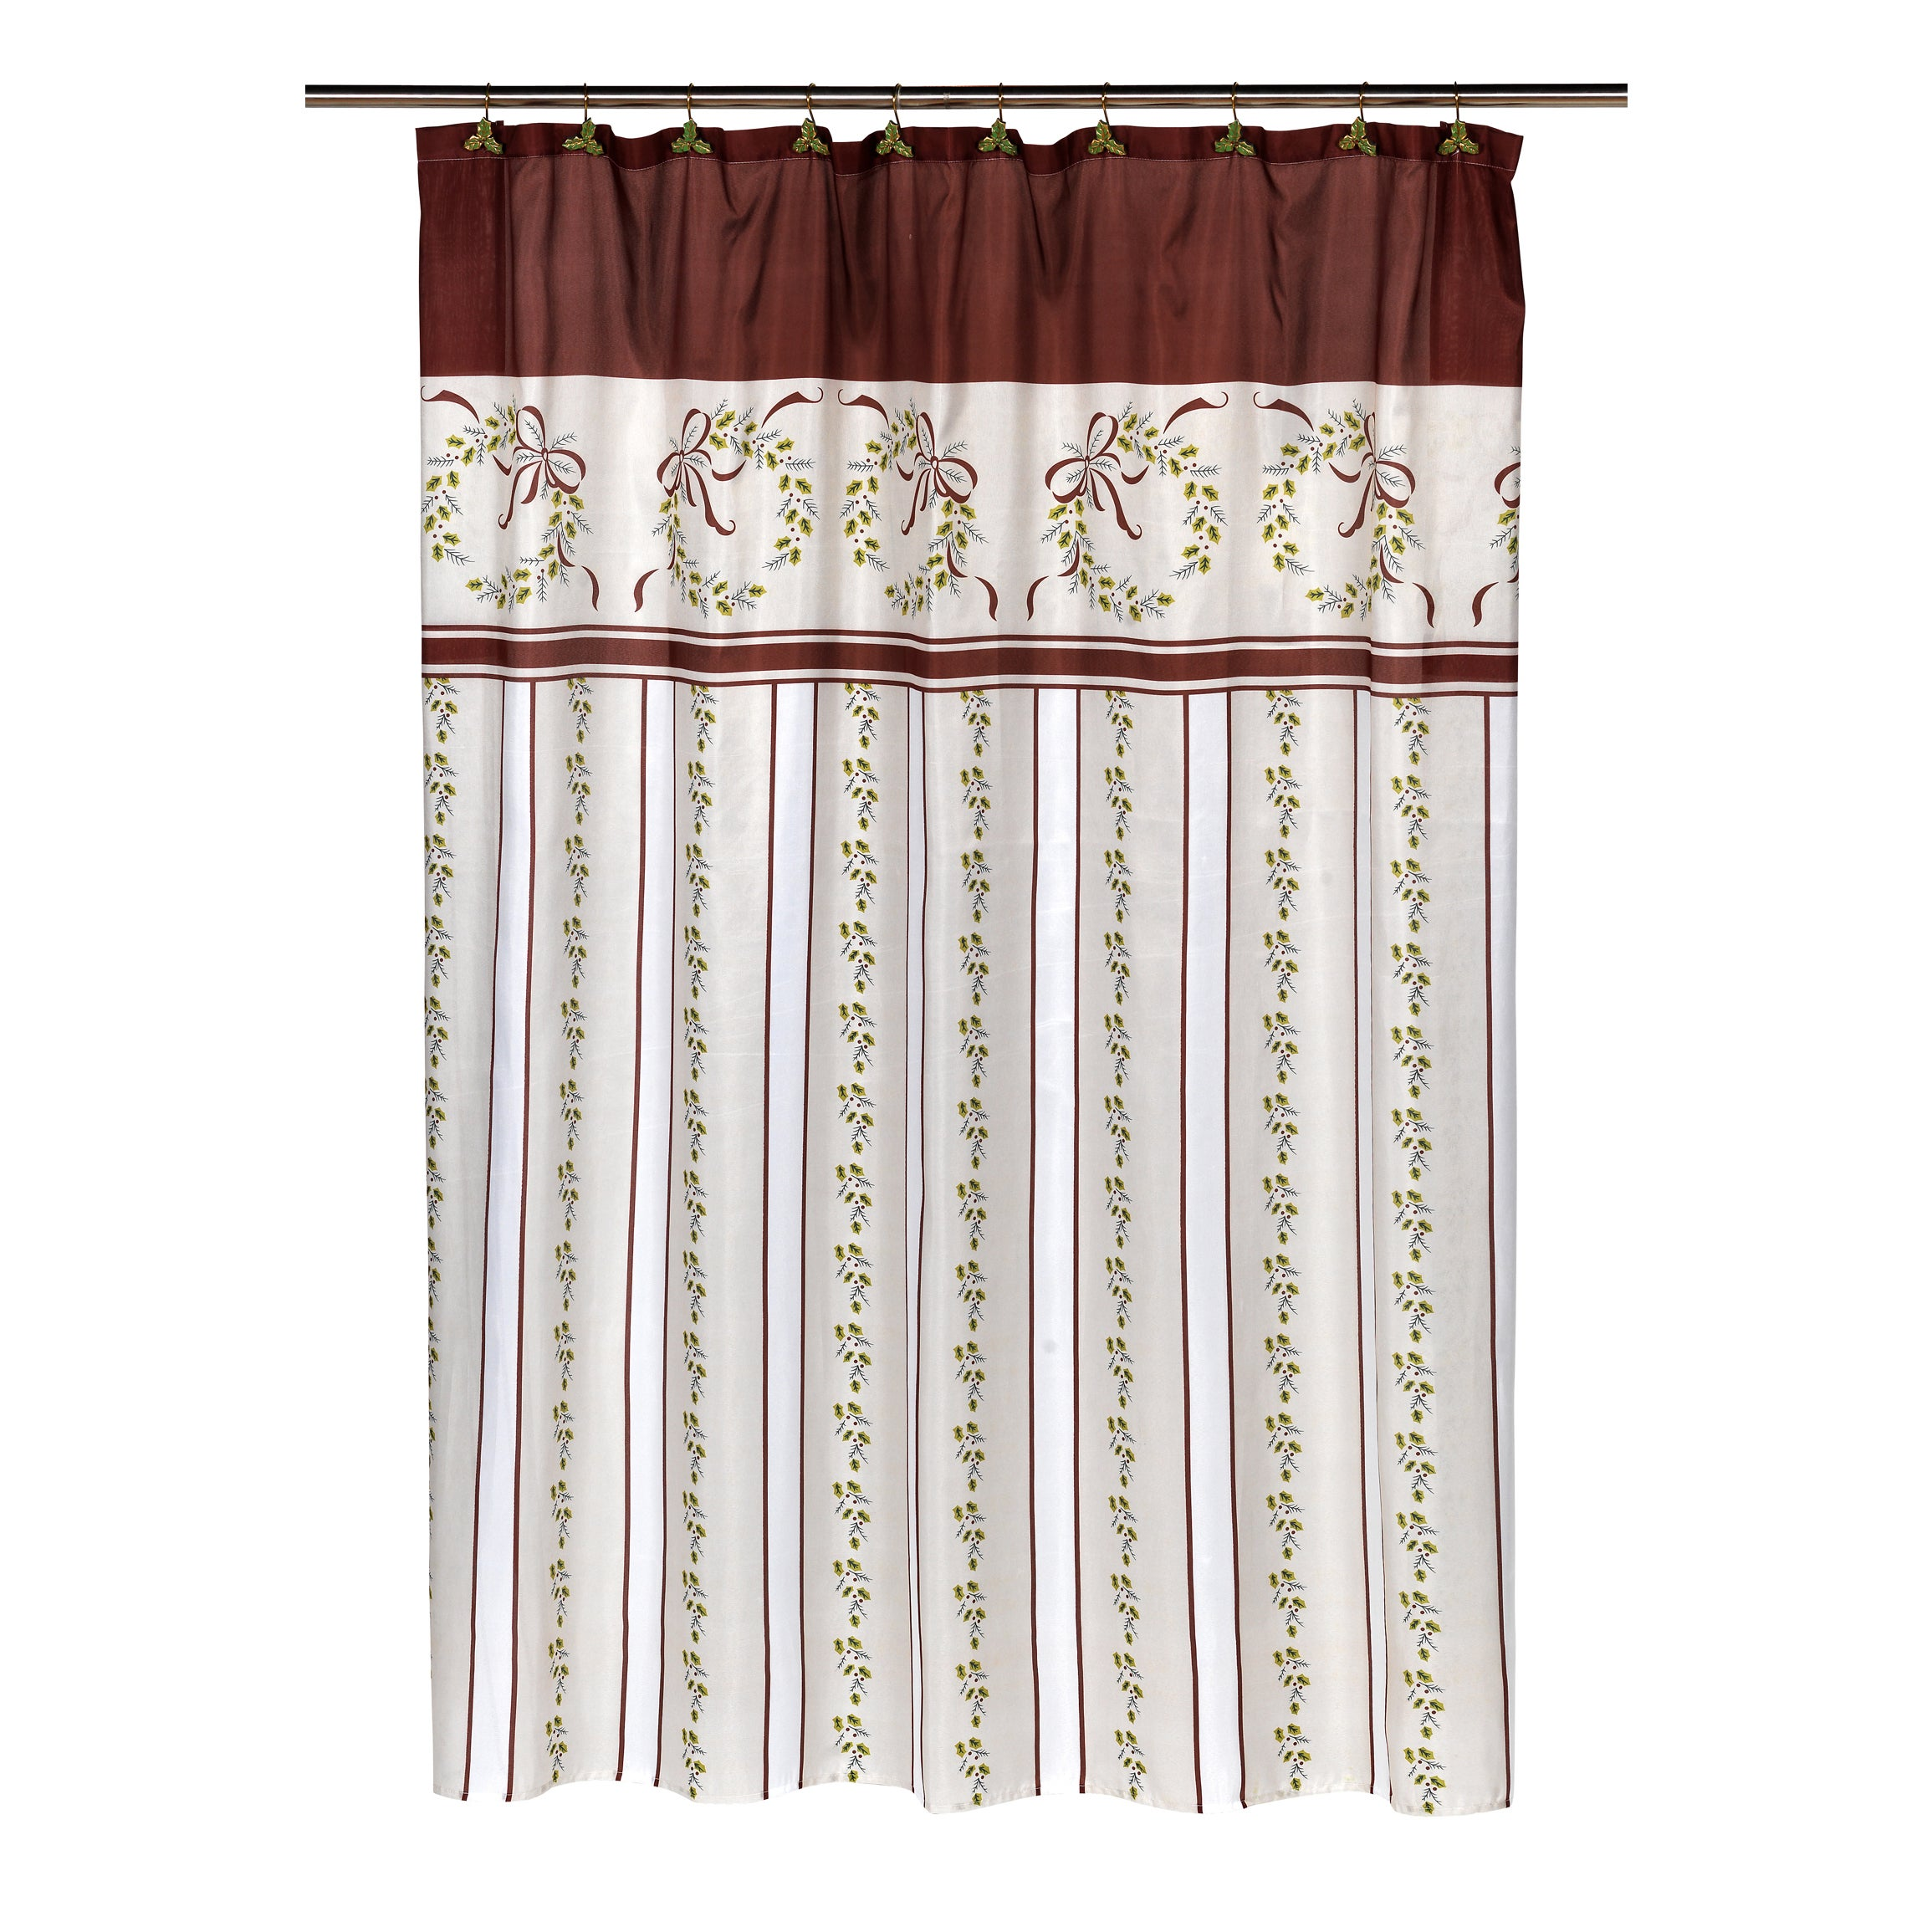 14 Piece Victorian Christmas Holiday Themed Shower Curtain Ensemble